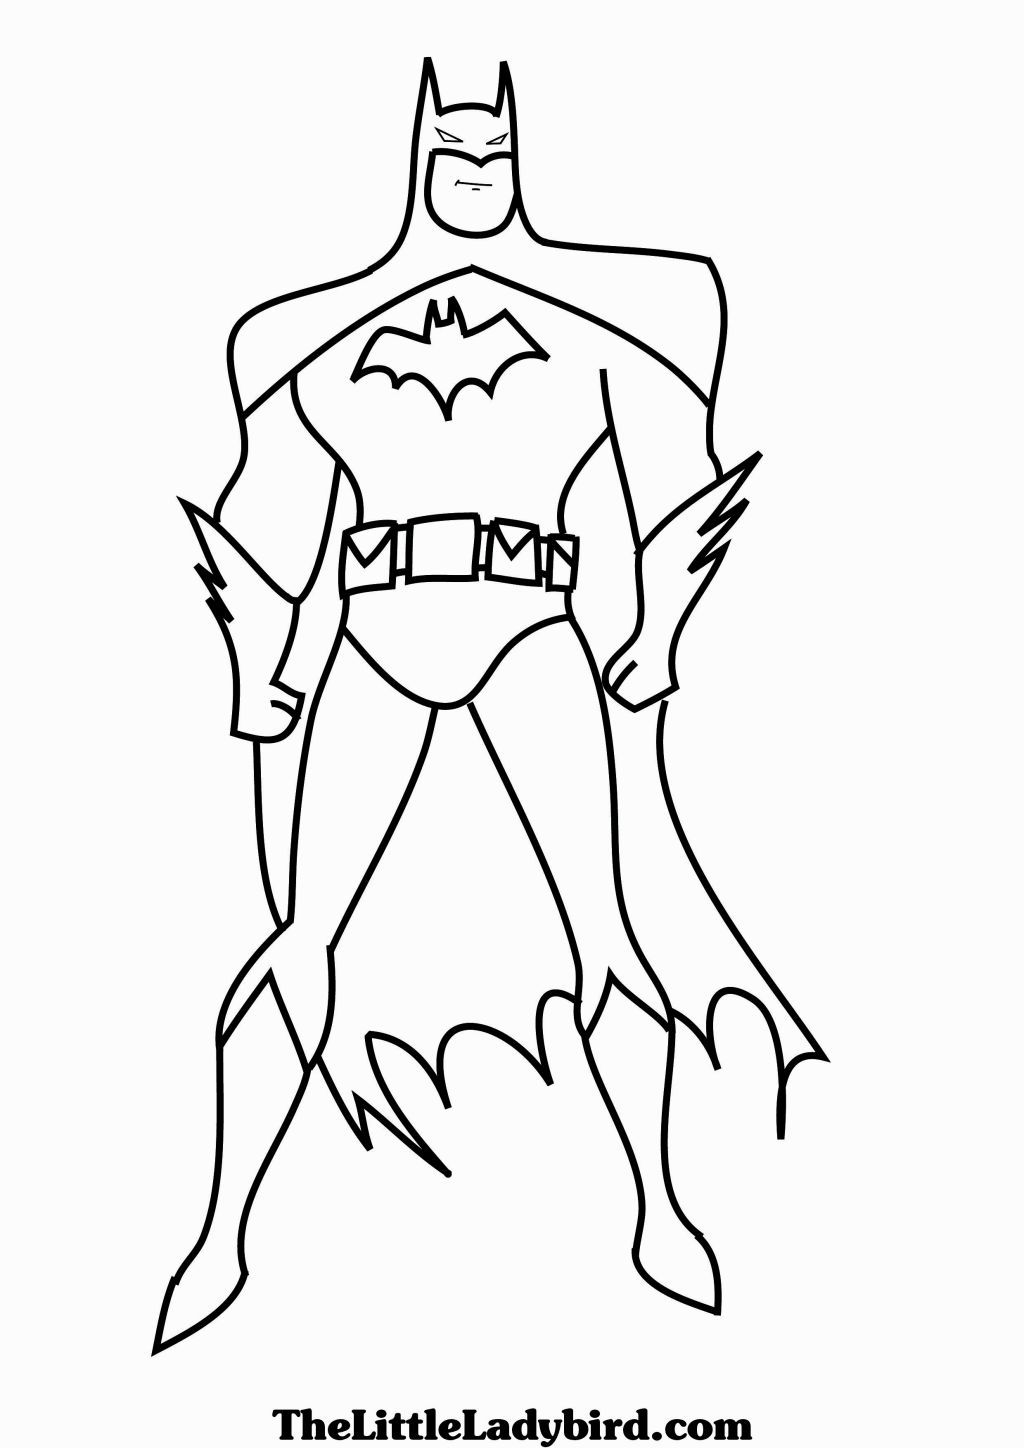 coloring pages batman printable template - photo#36